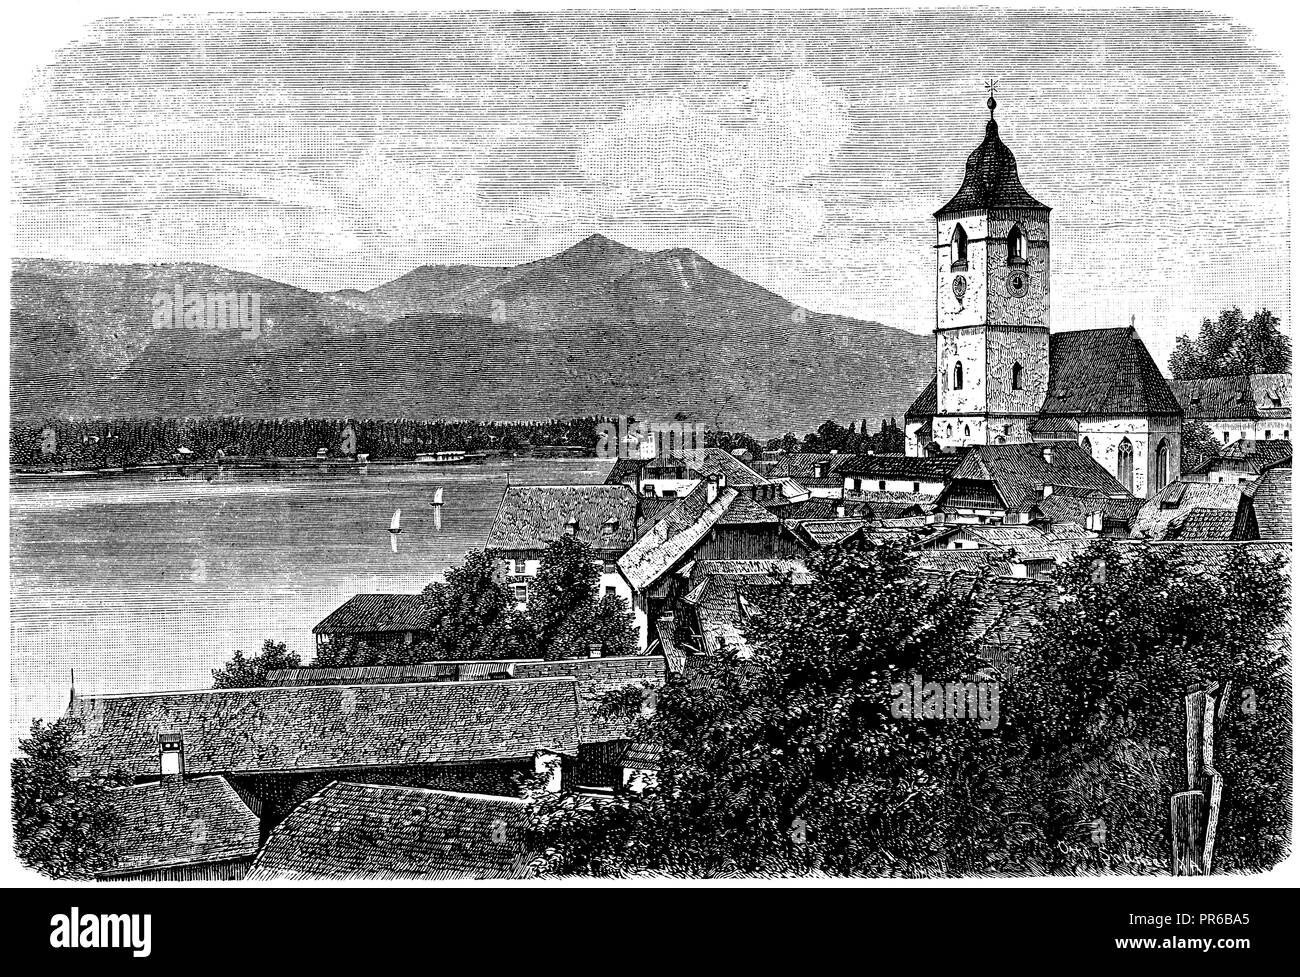 St. Wolfgang at the Abersee, - Stock Image